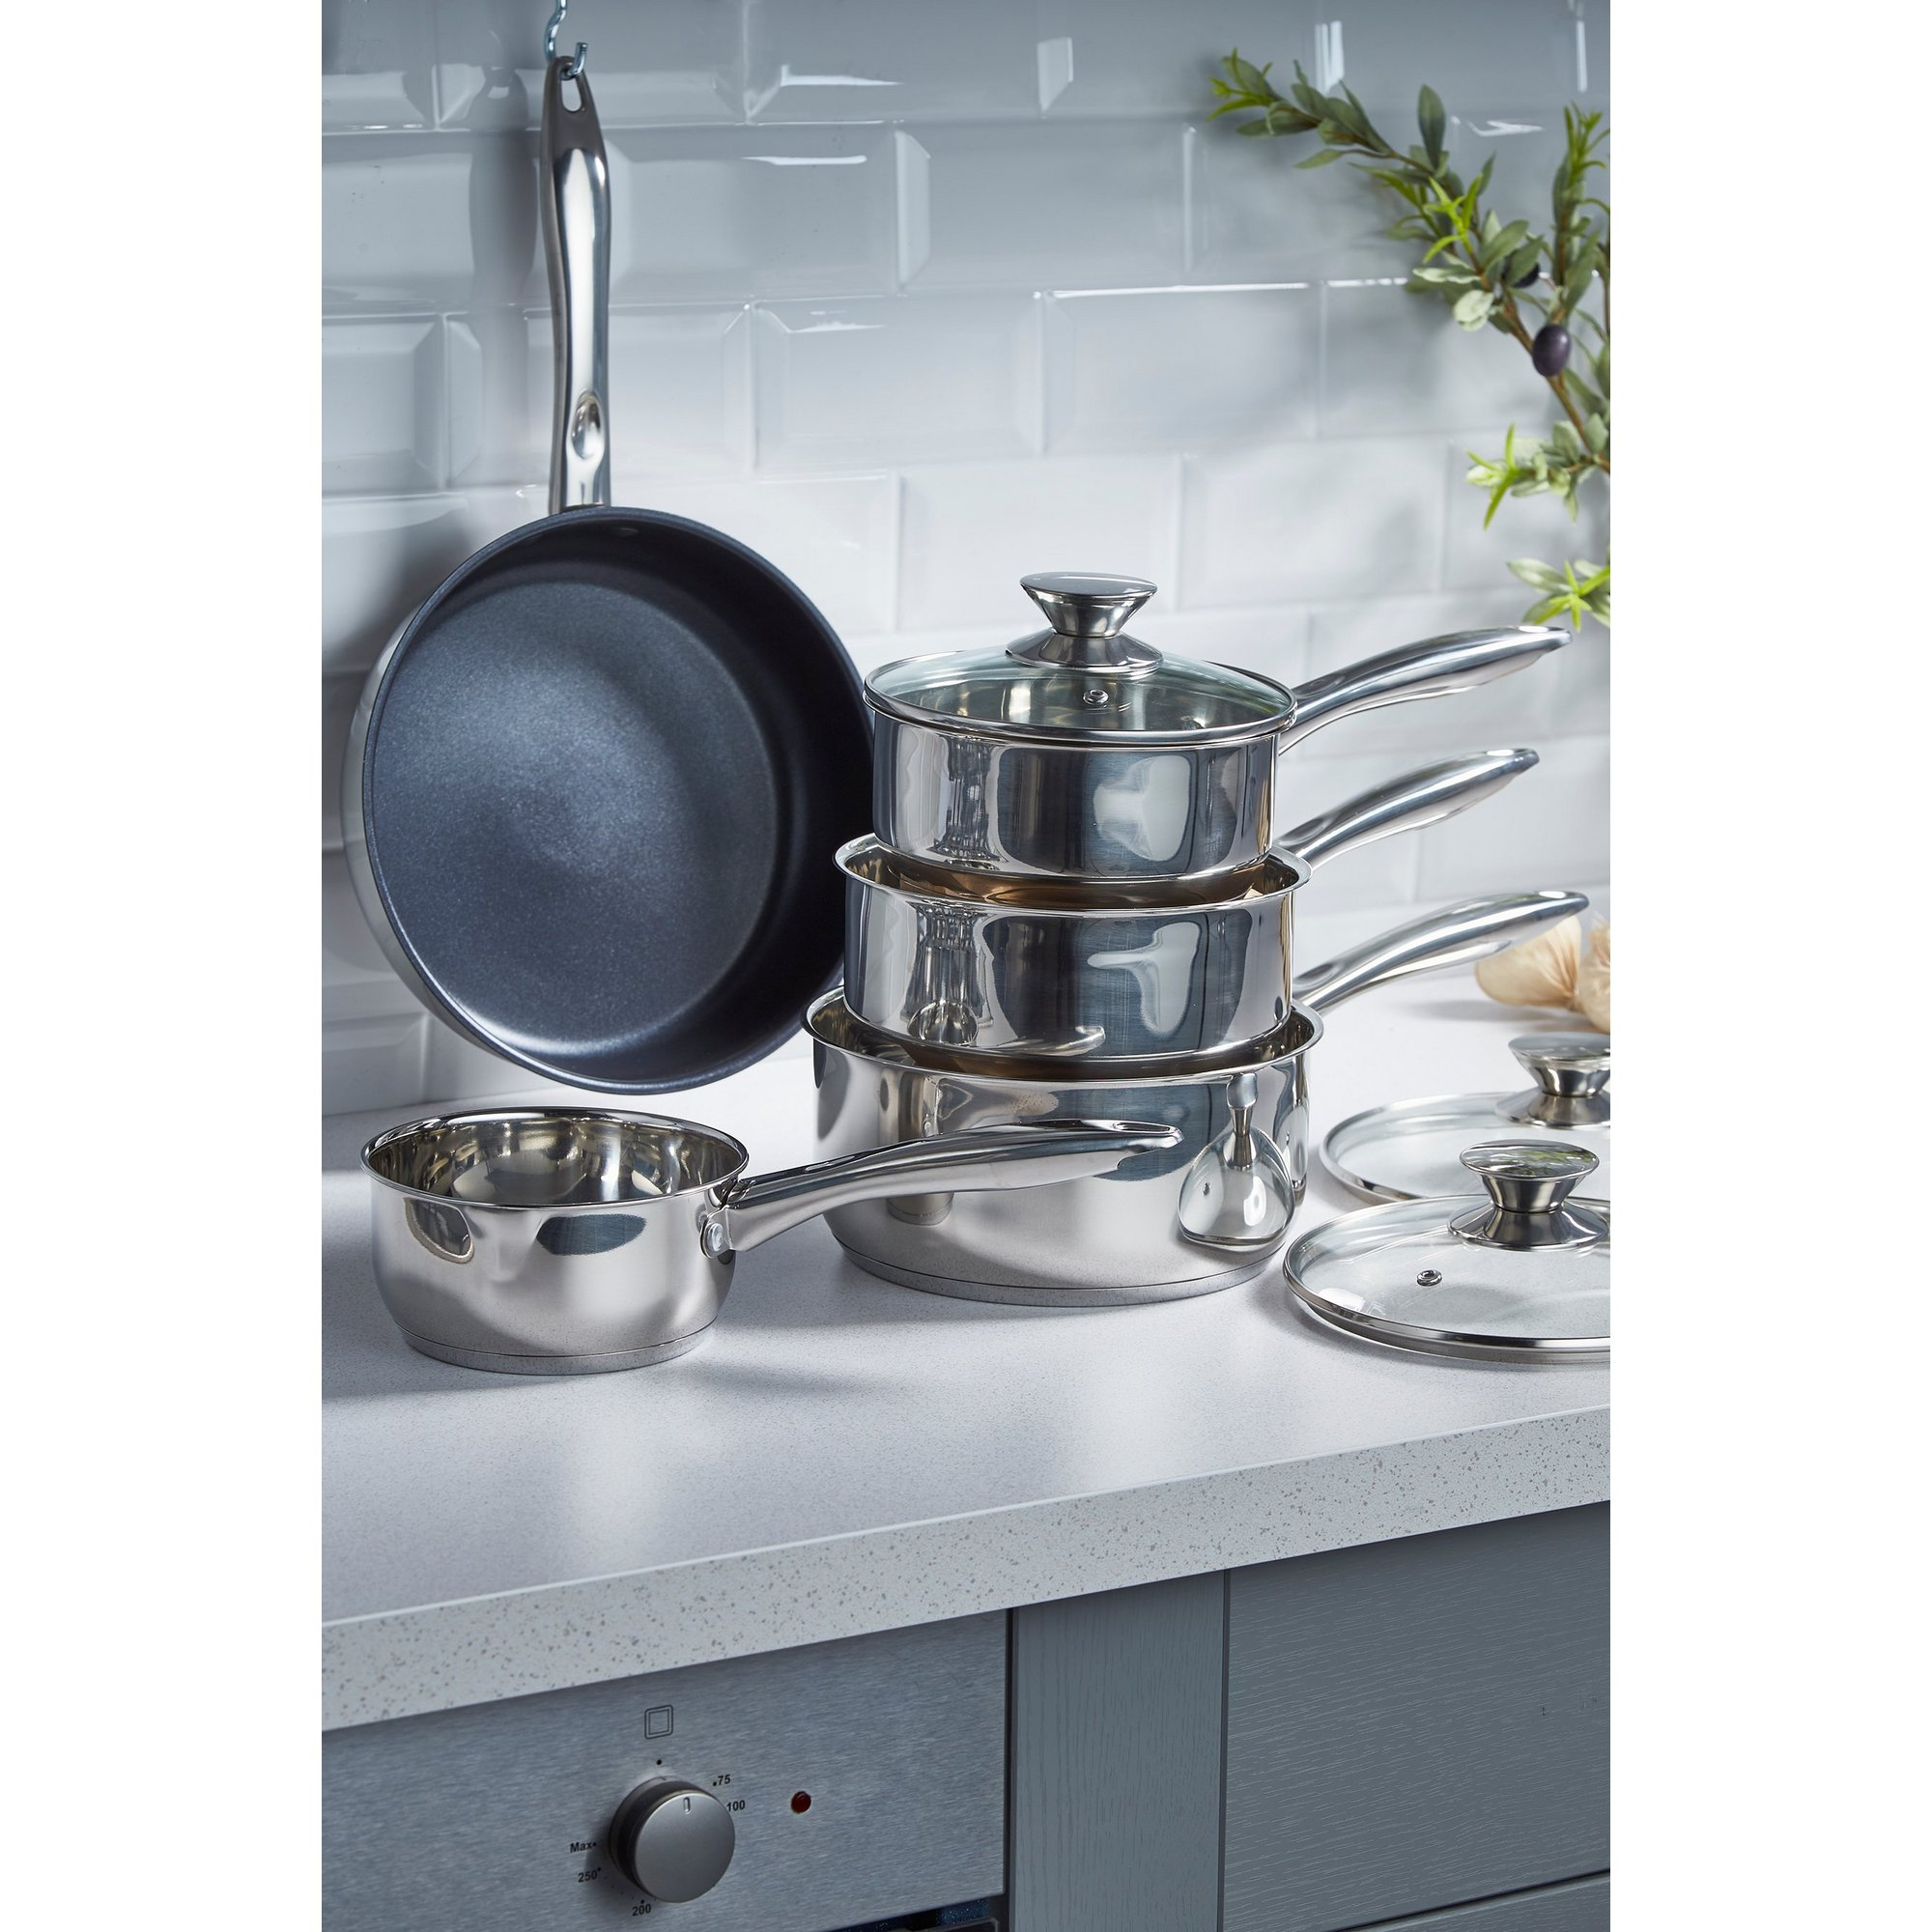 5-Piece Russell Hobbs Classic Collection Stainless Steel Pan Set